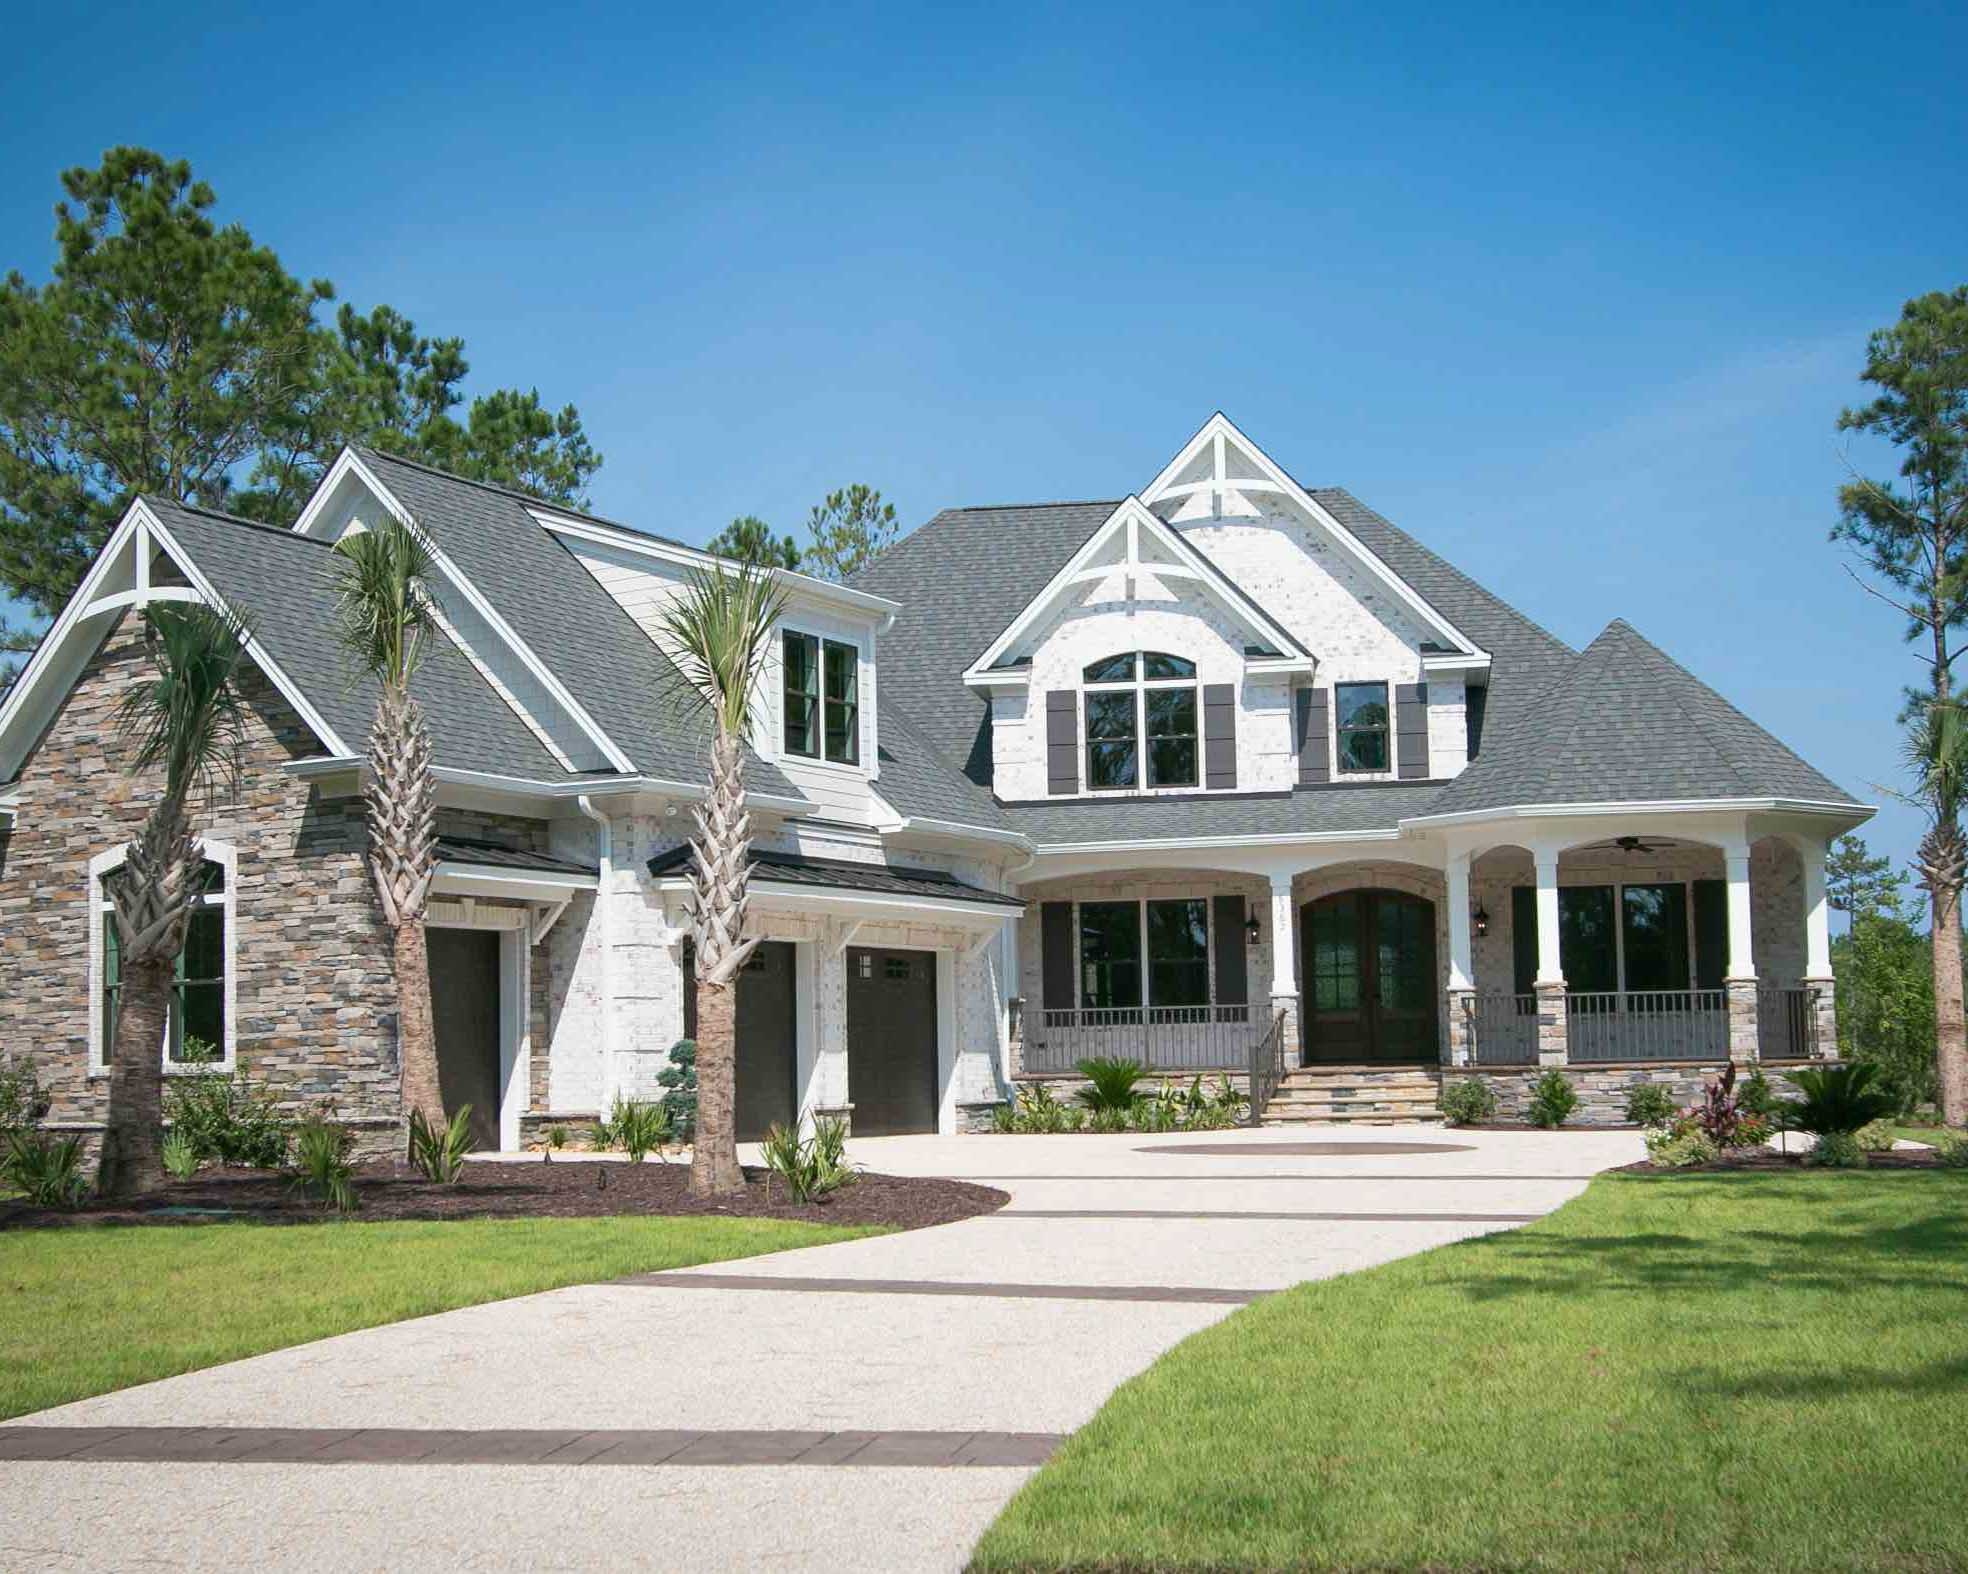 brick home by ocean isle beach builder